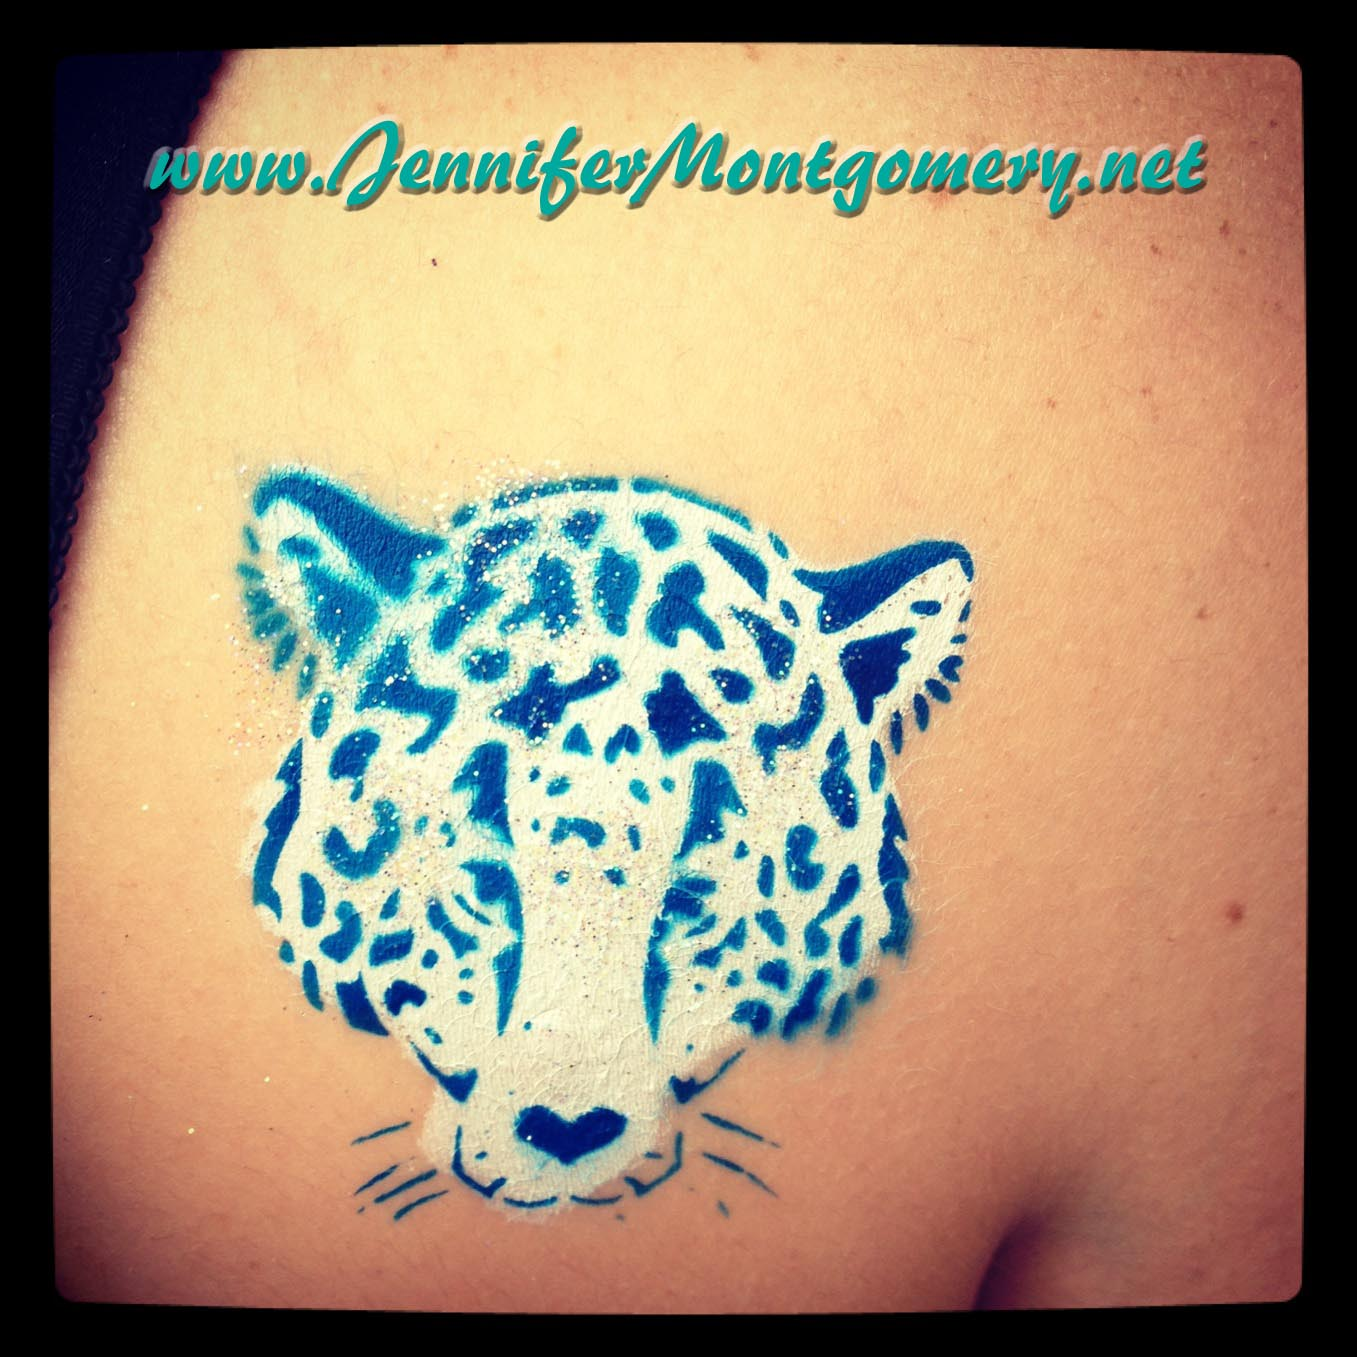 Airbrush tattoos and face painting wilmington de for Airbrush tattoo paint